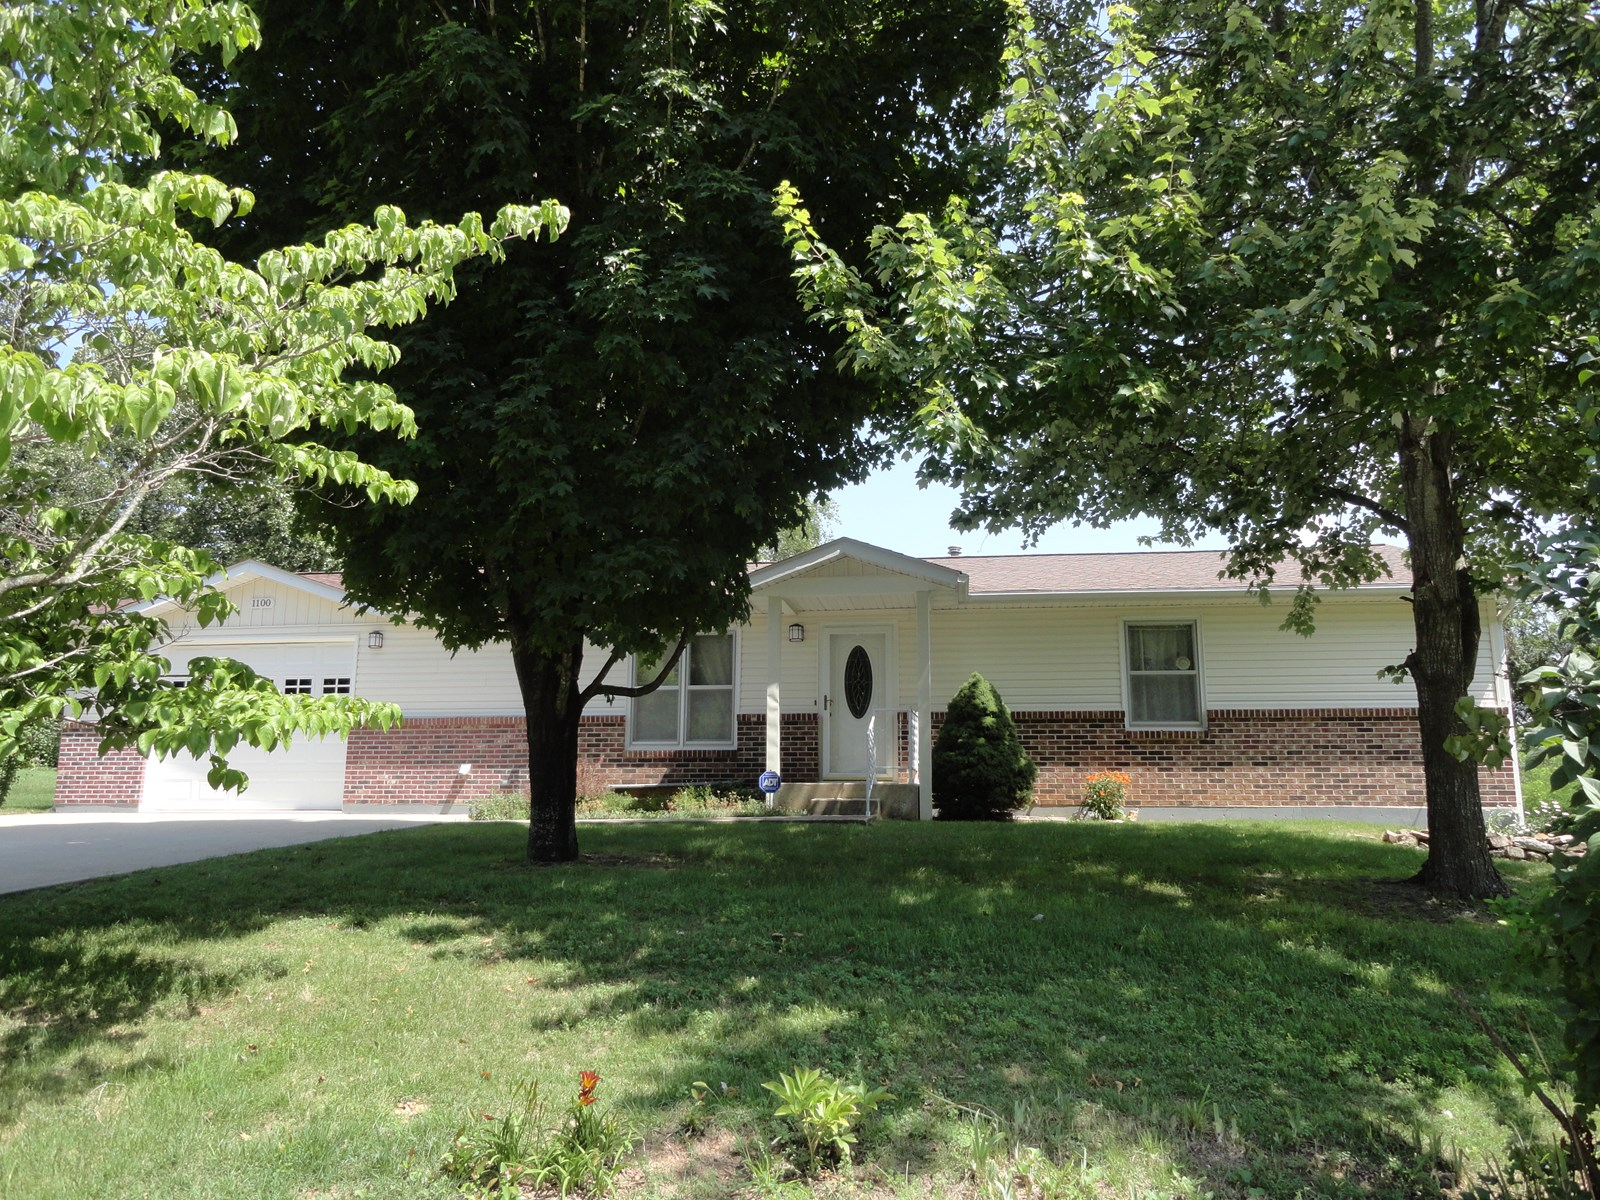 HANDICAP ACCESSIBLE - RANCH STYLE HOME IN SALEM MISSOURI